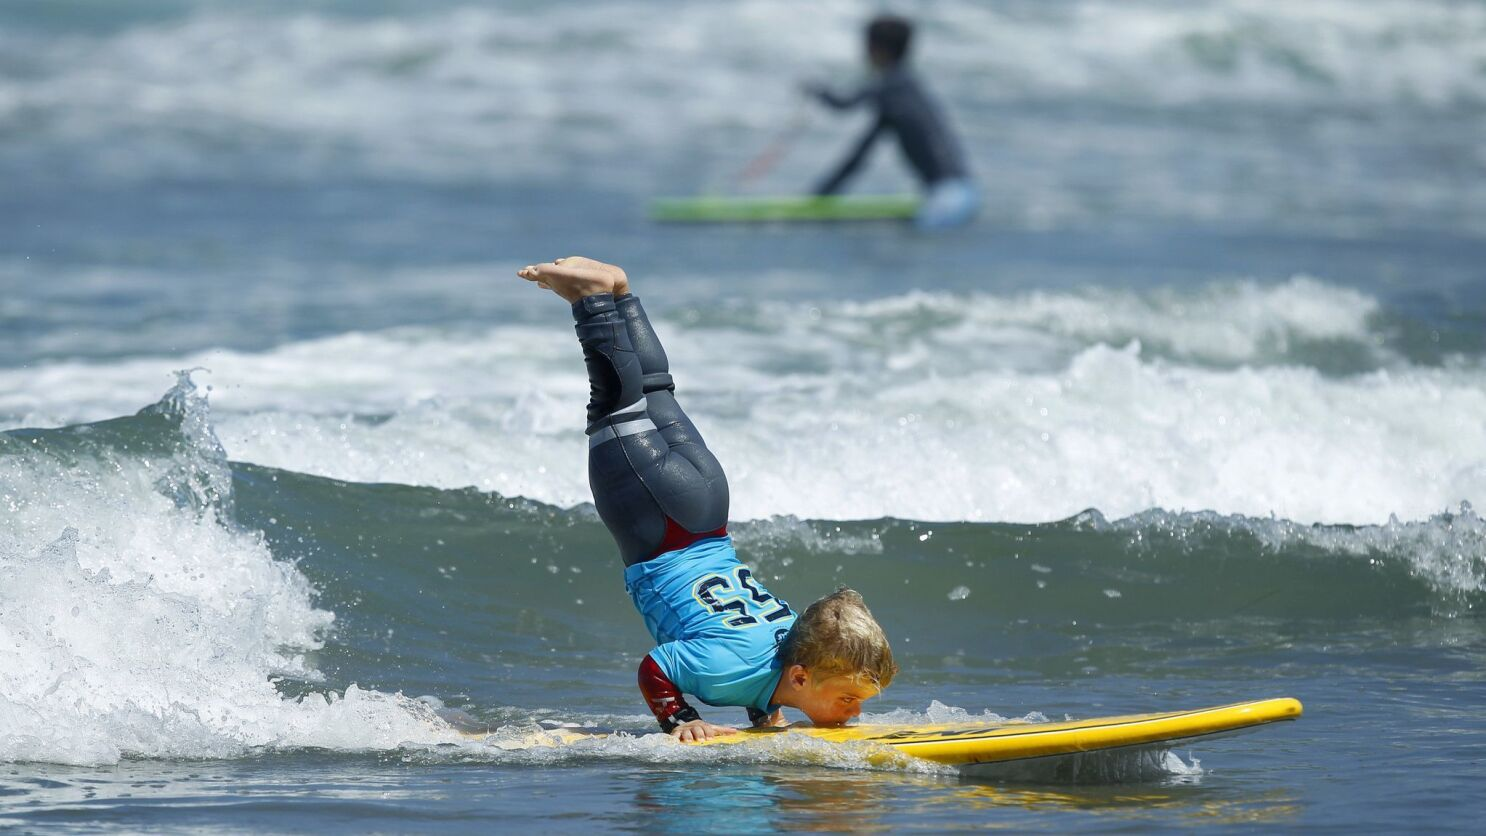 58b40793625a Elite adaptive surfers offer an ocean of possibilities - The San ...